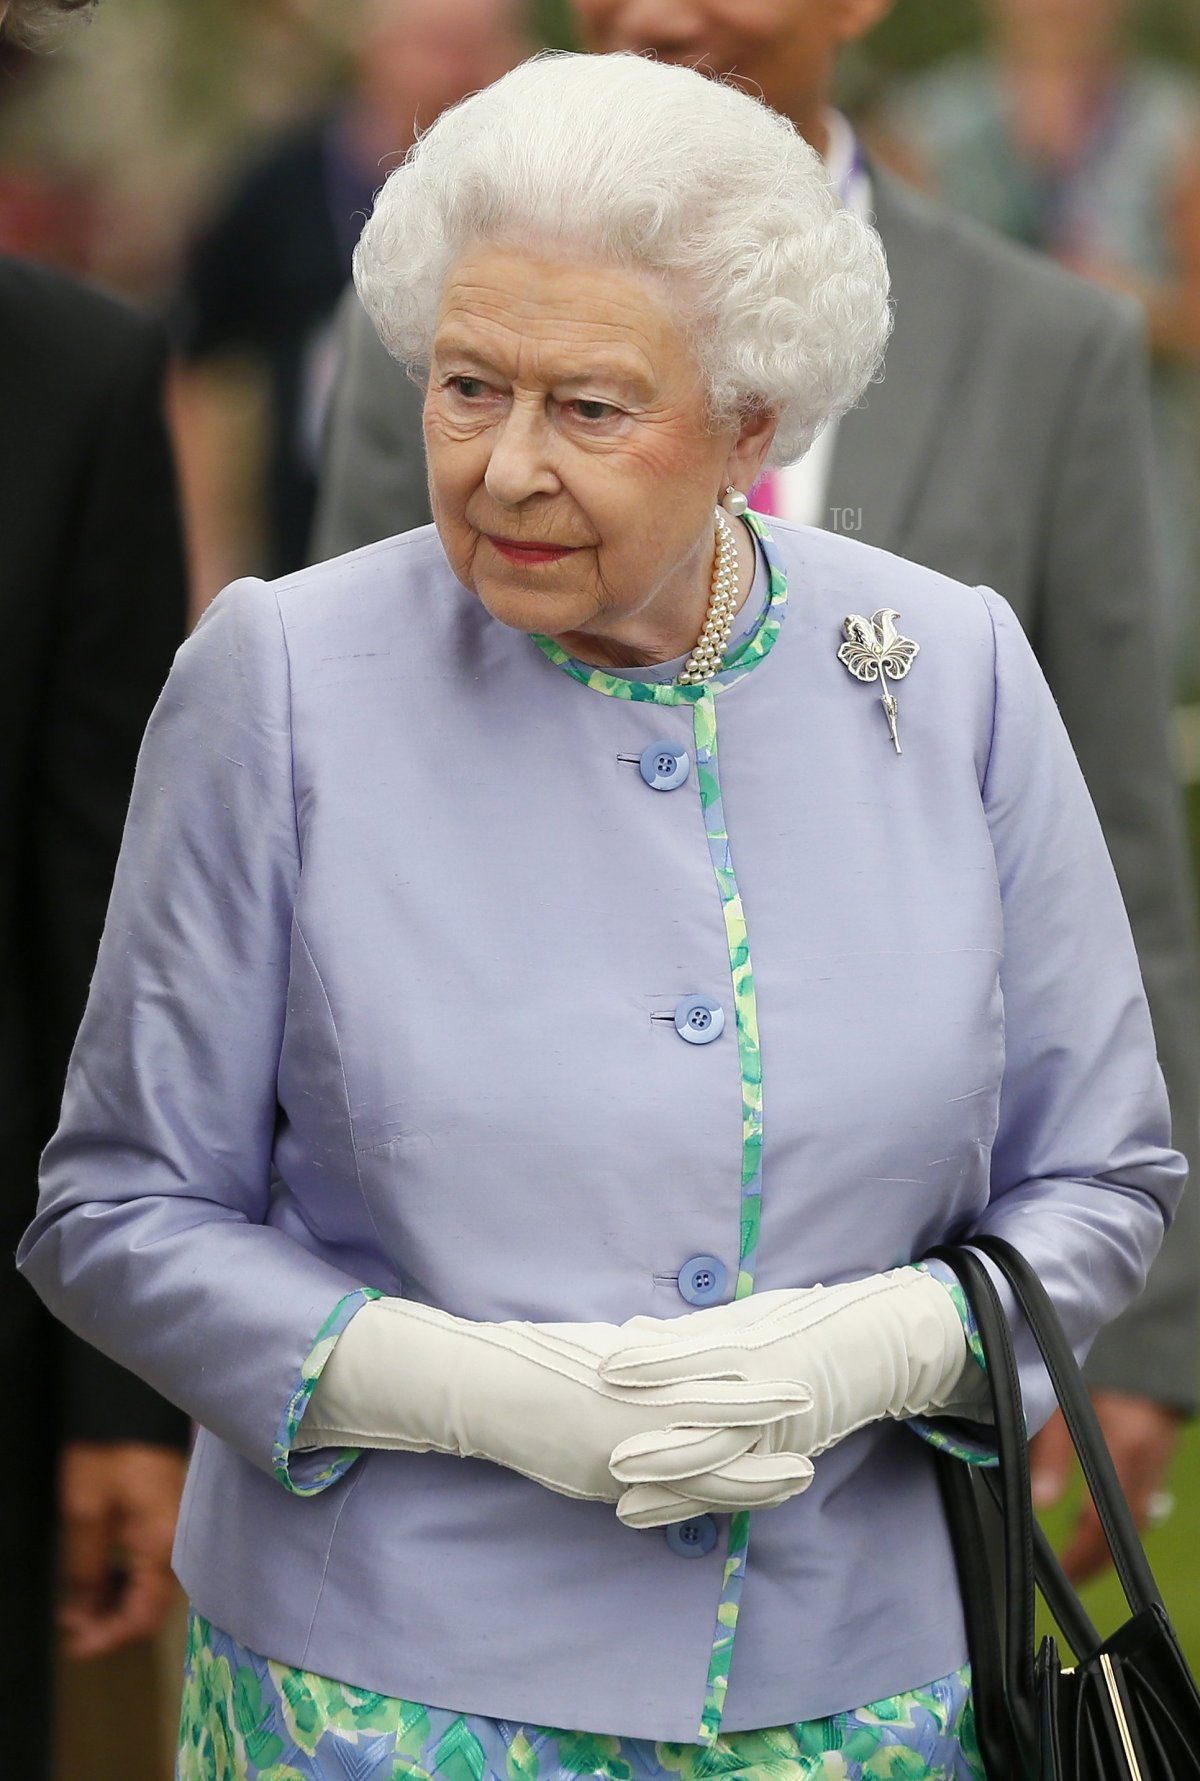 Queen Elizabeth II looks at a dispaly during a visit to the Chelsea Flower Show on press day on May 19, 2014 in London, England